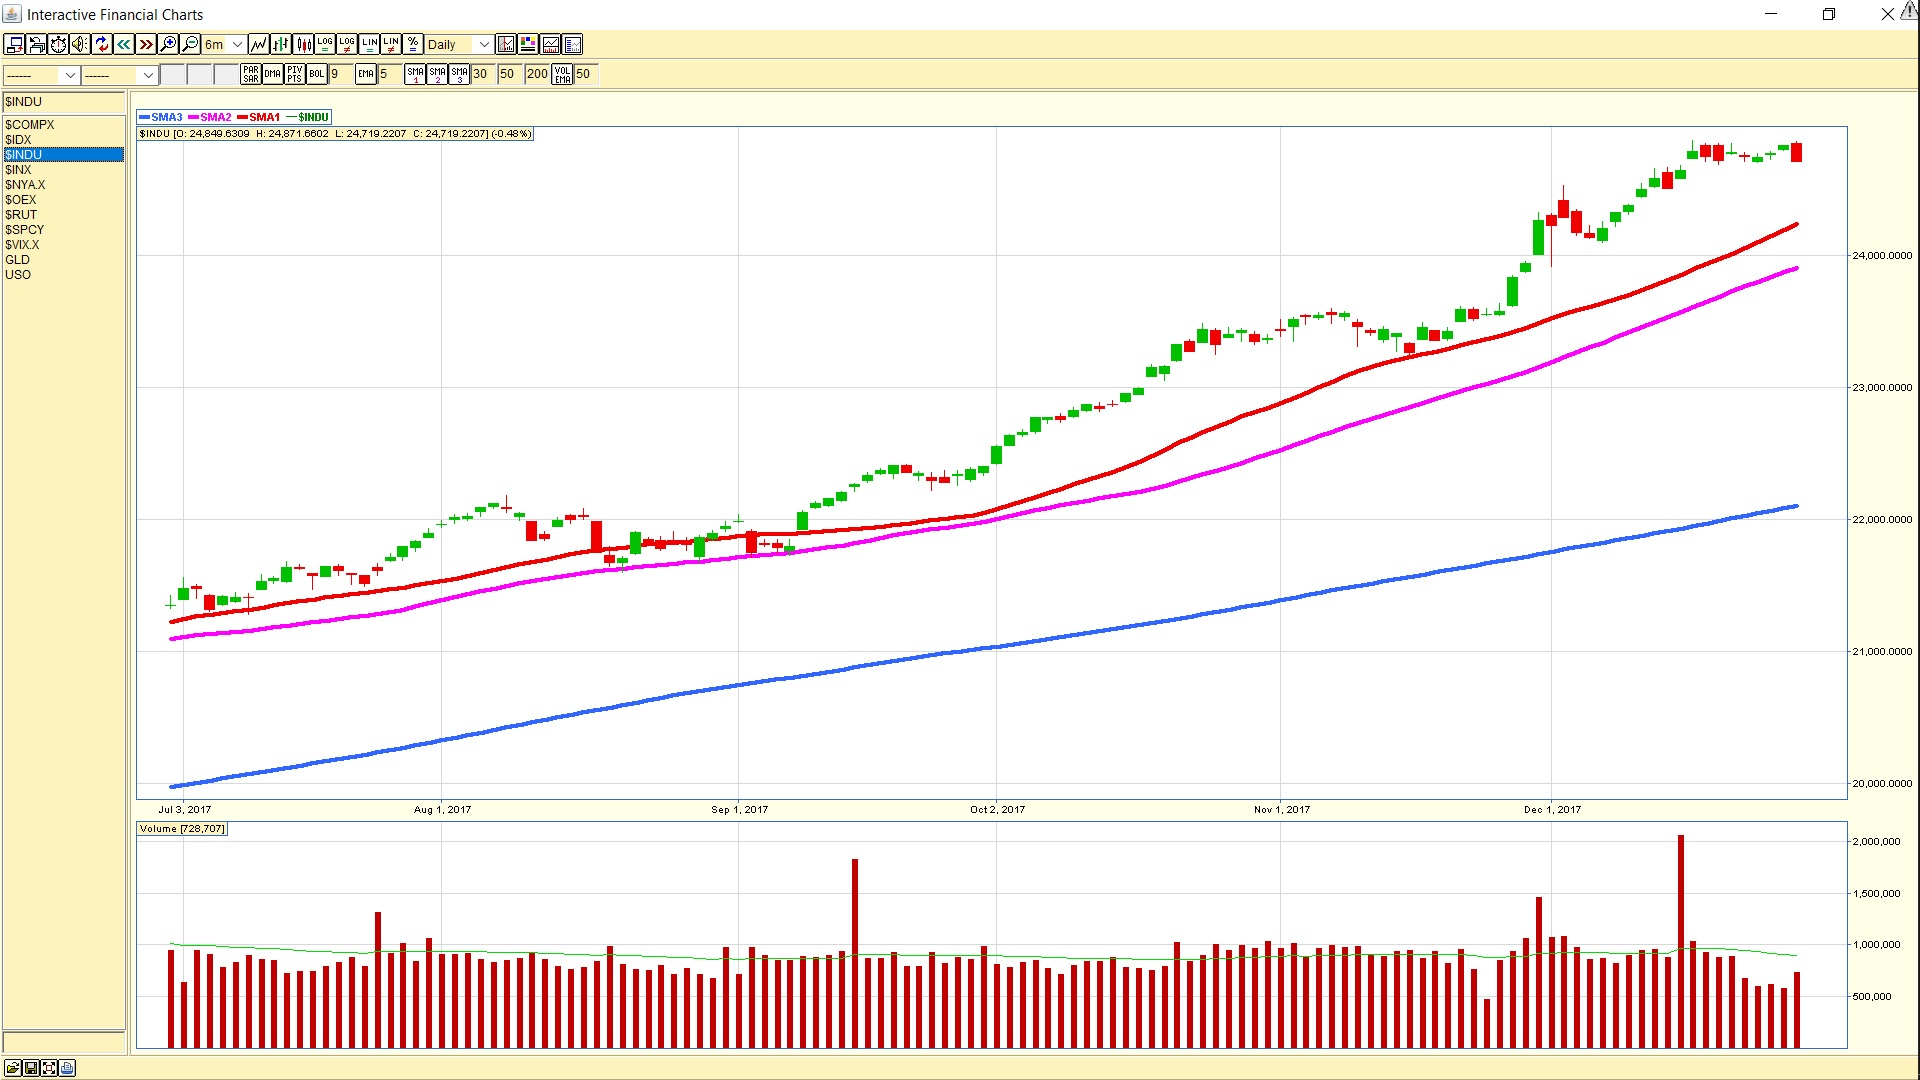 Dow Jones Industrial Average daily